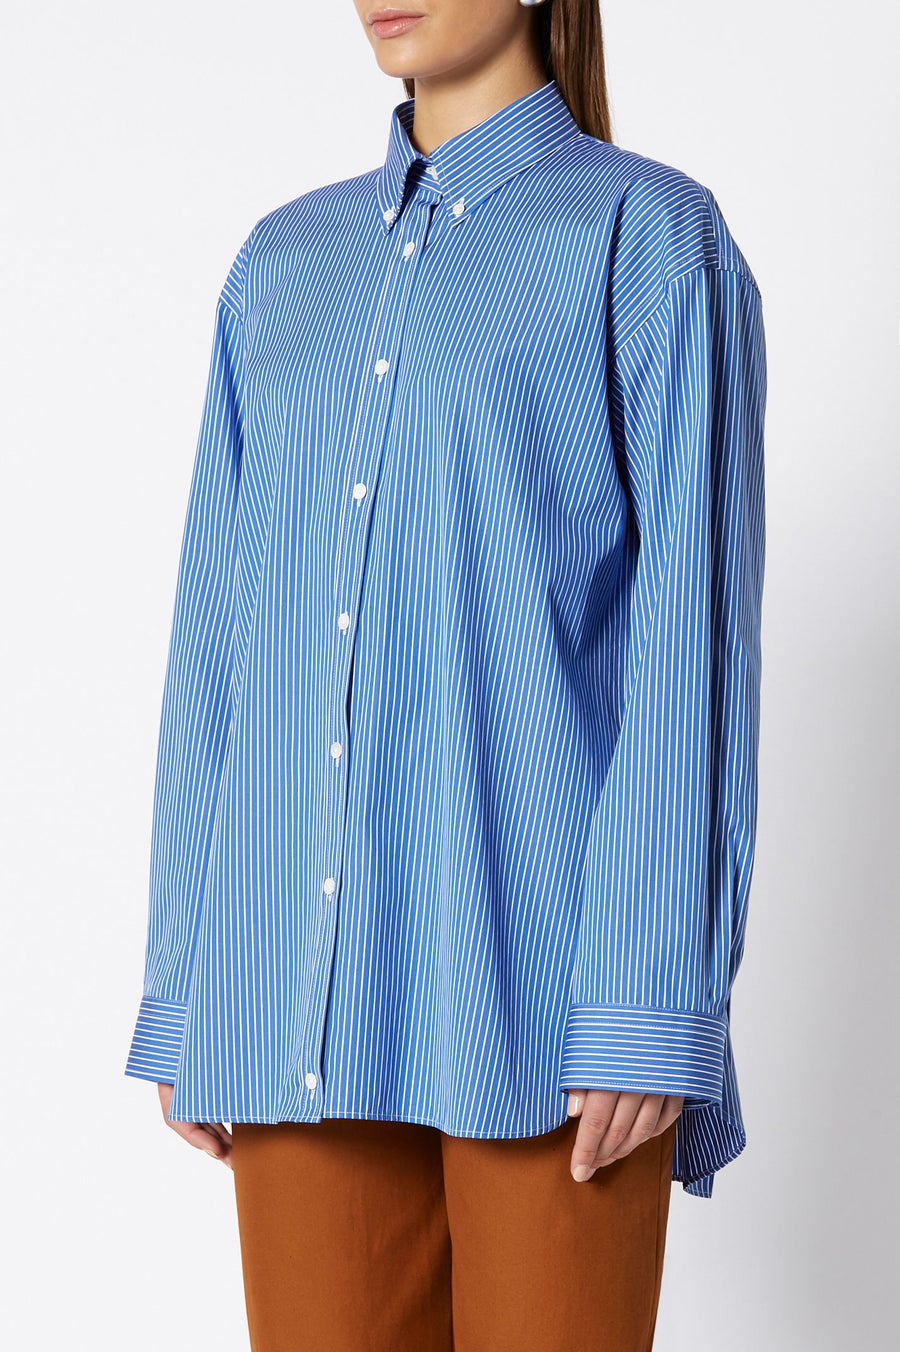 BUTTON COLLAR SHIRT, 100% Turkish cotton, long sleeve, button all the way down, oversize, color marine